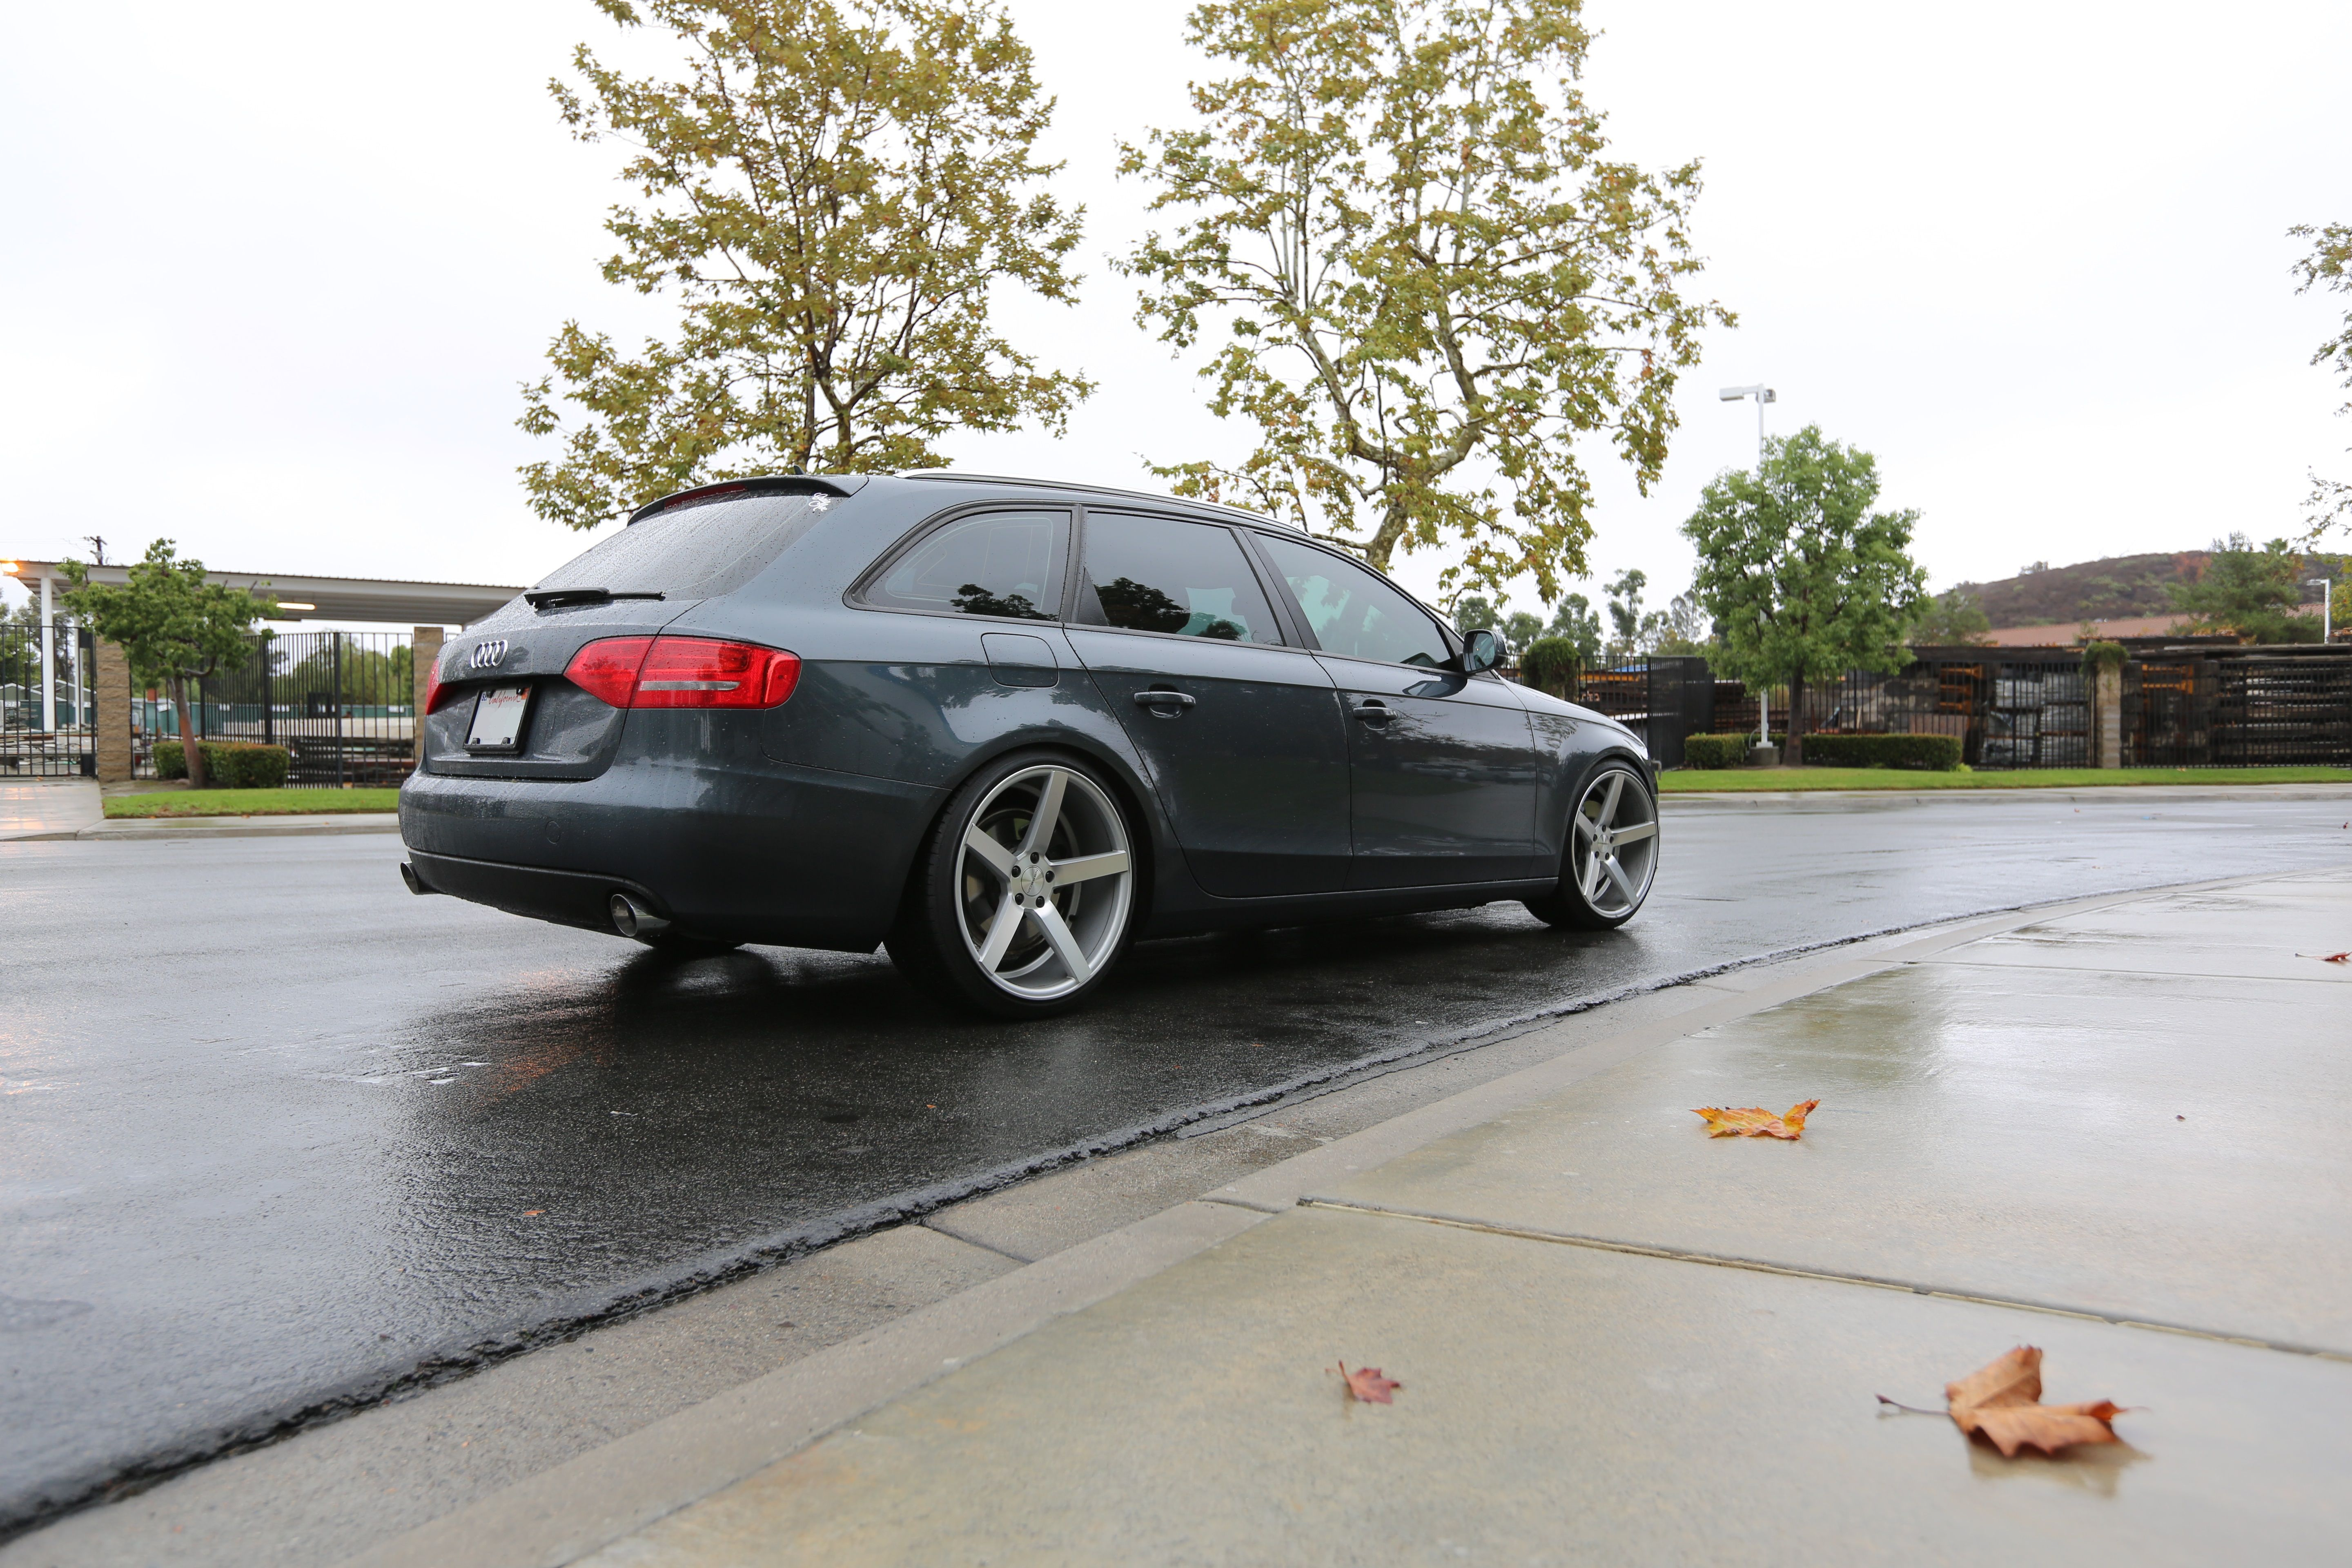 Pacific German A4 Avant Vossen Awe Tuning 034